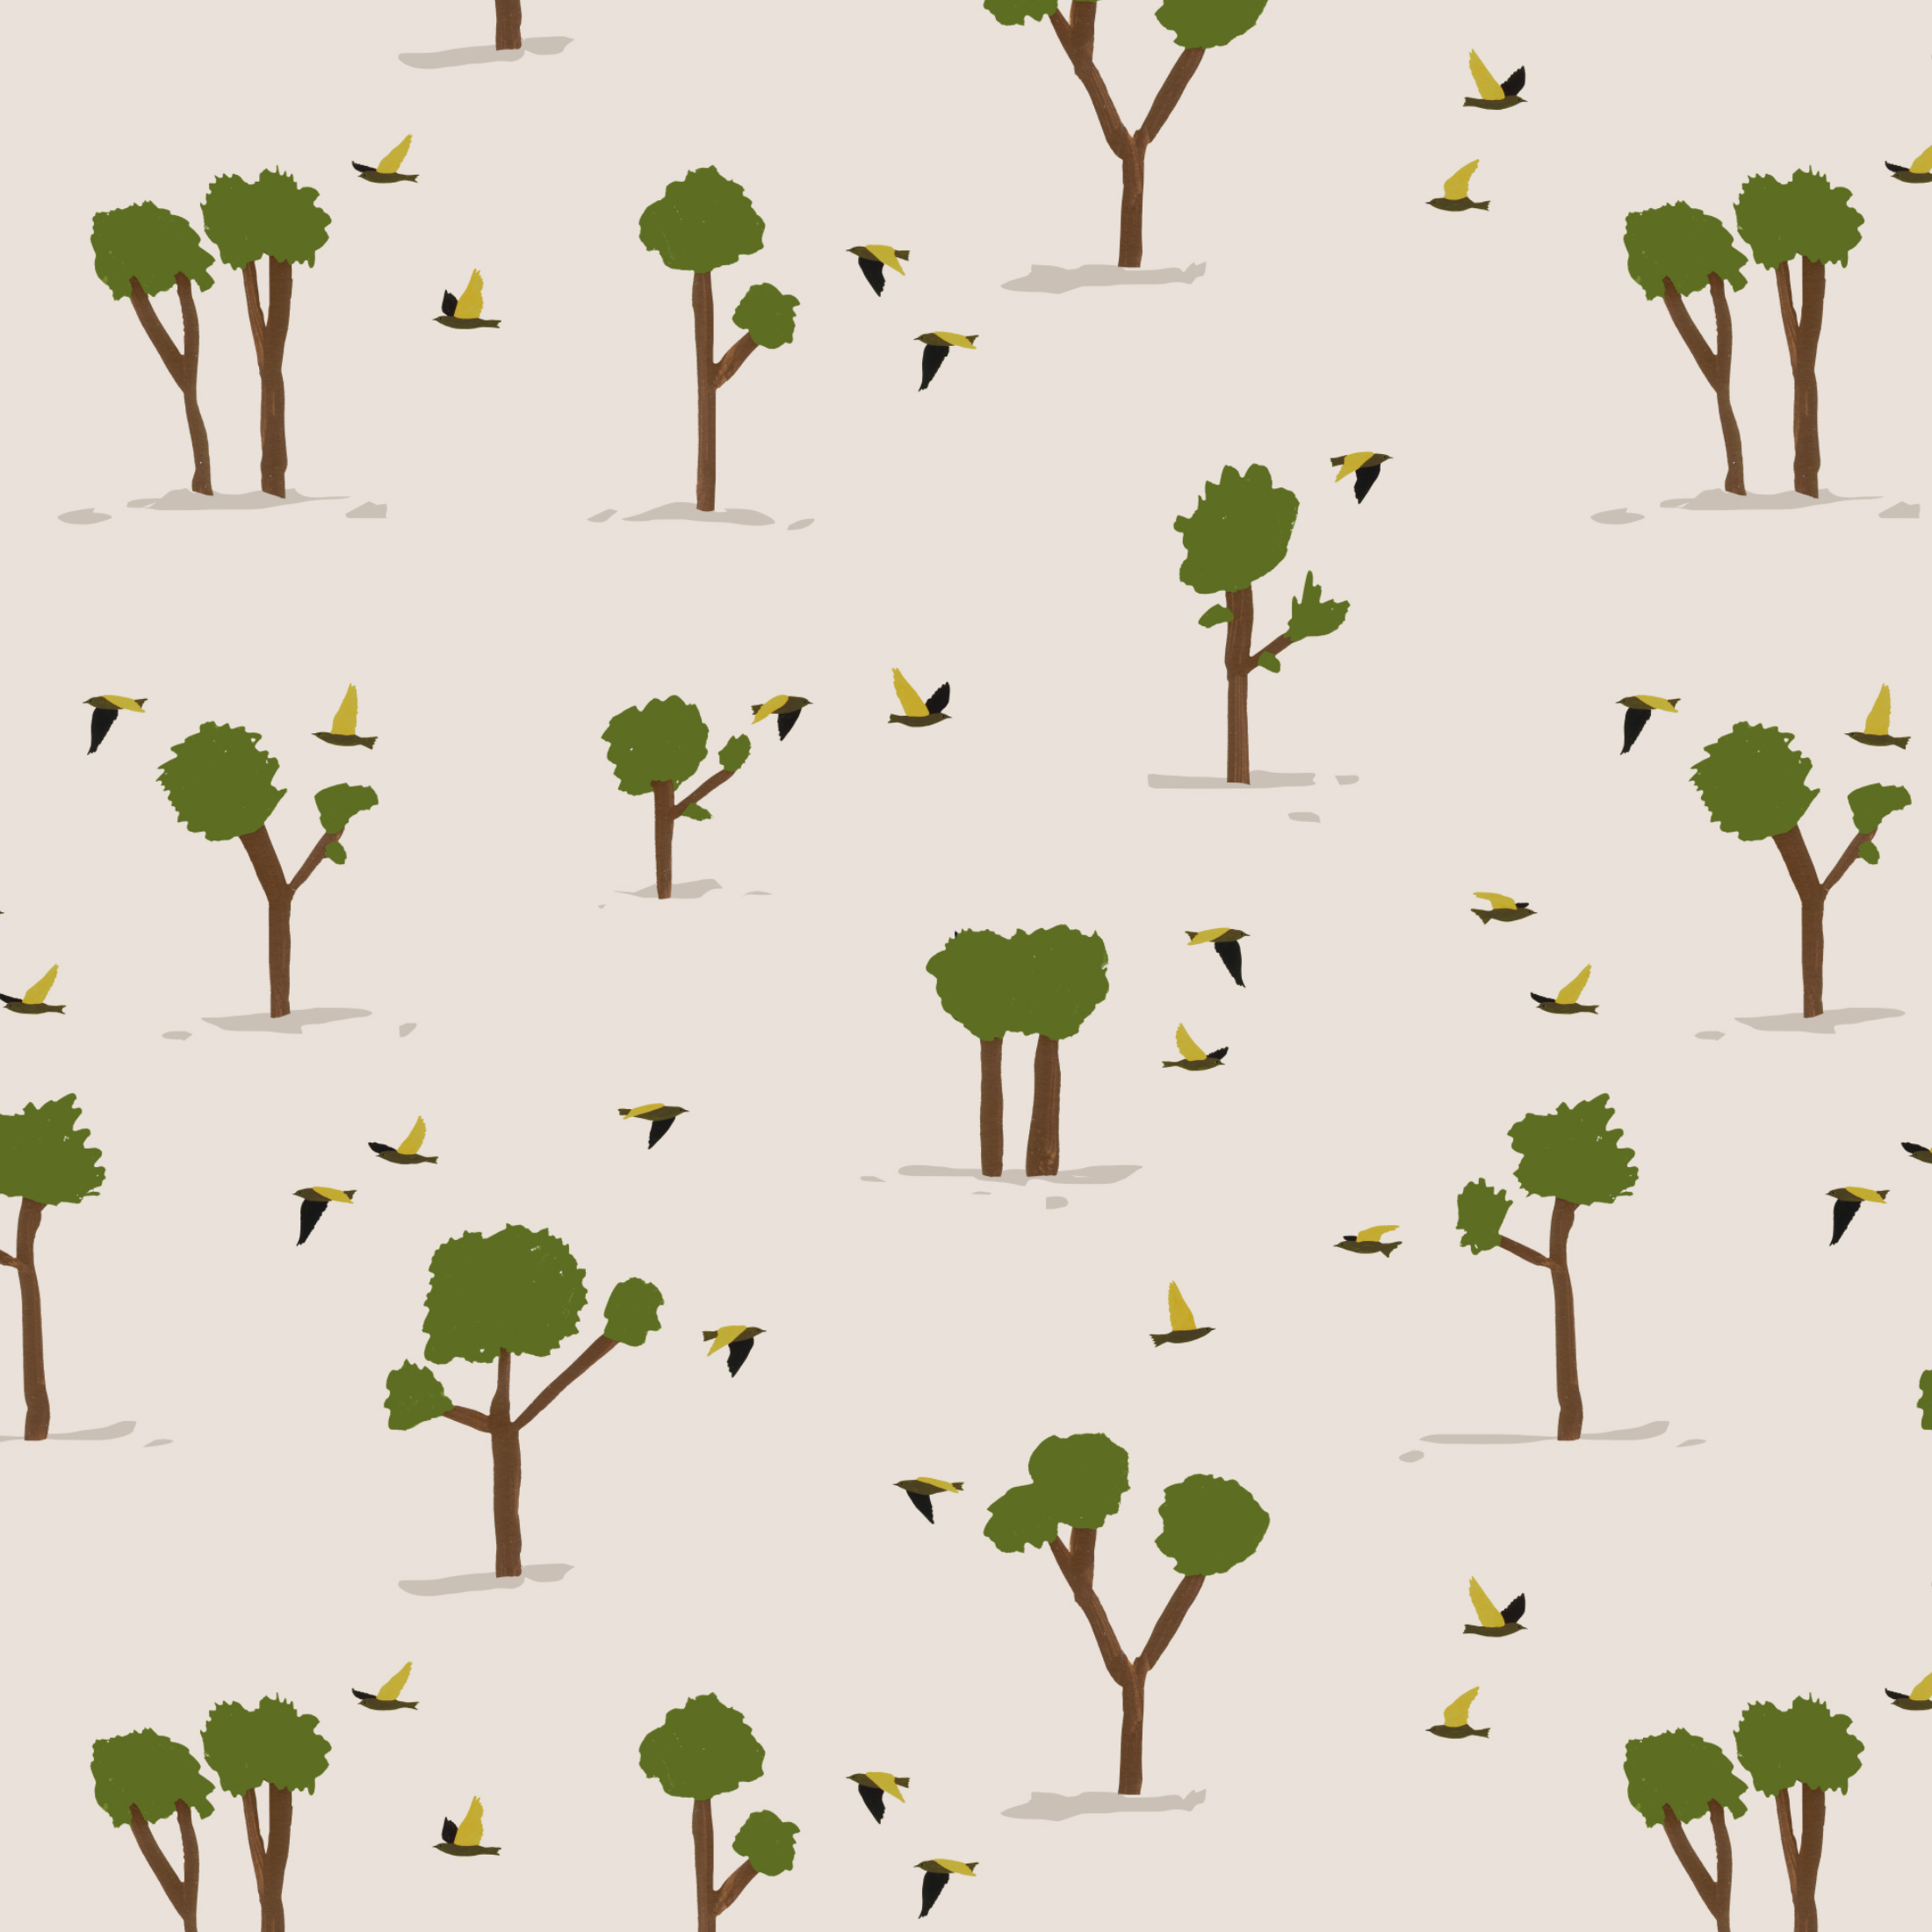 scattered forest pattern